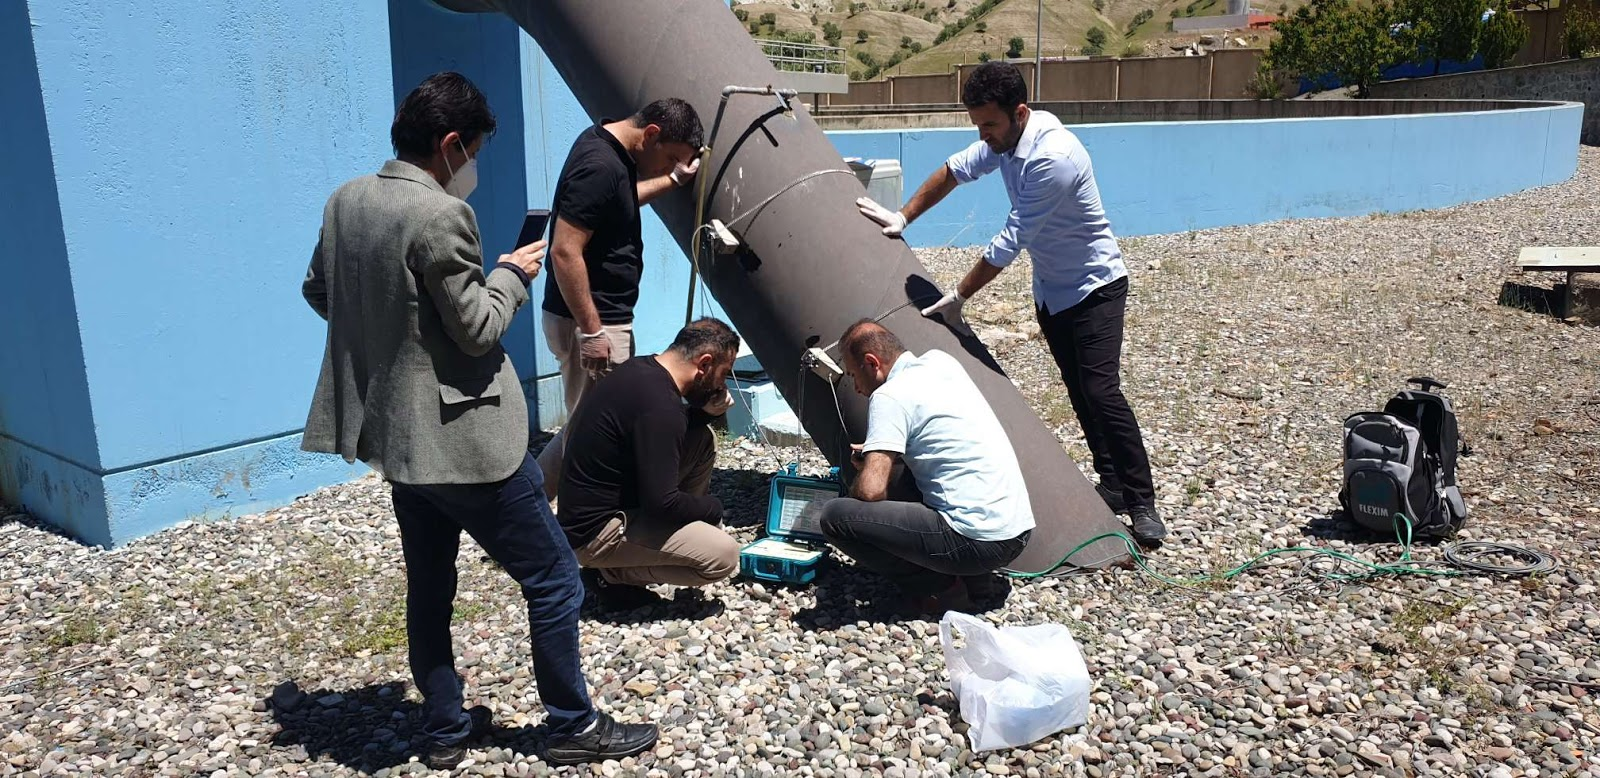 Staff of the Soran Water Directorate use ultrasonic flowmeters to measure the water flow through a main distribution pipe. Photo credit: WADA Tajdid Project